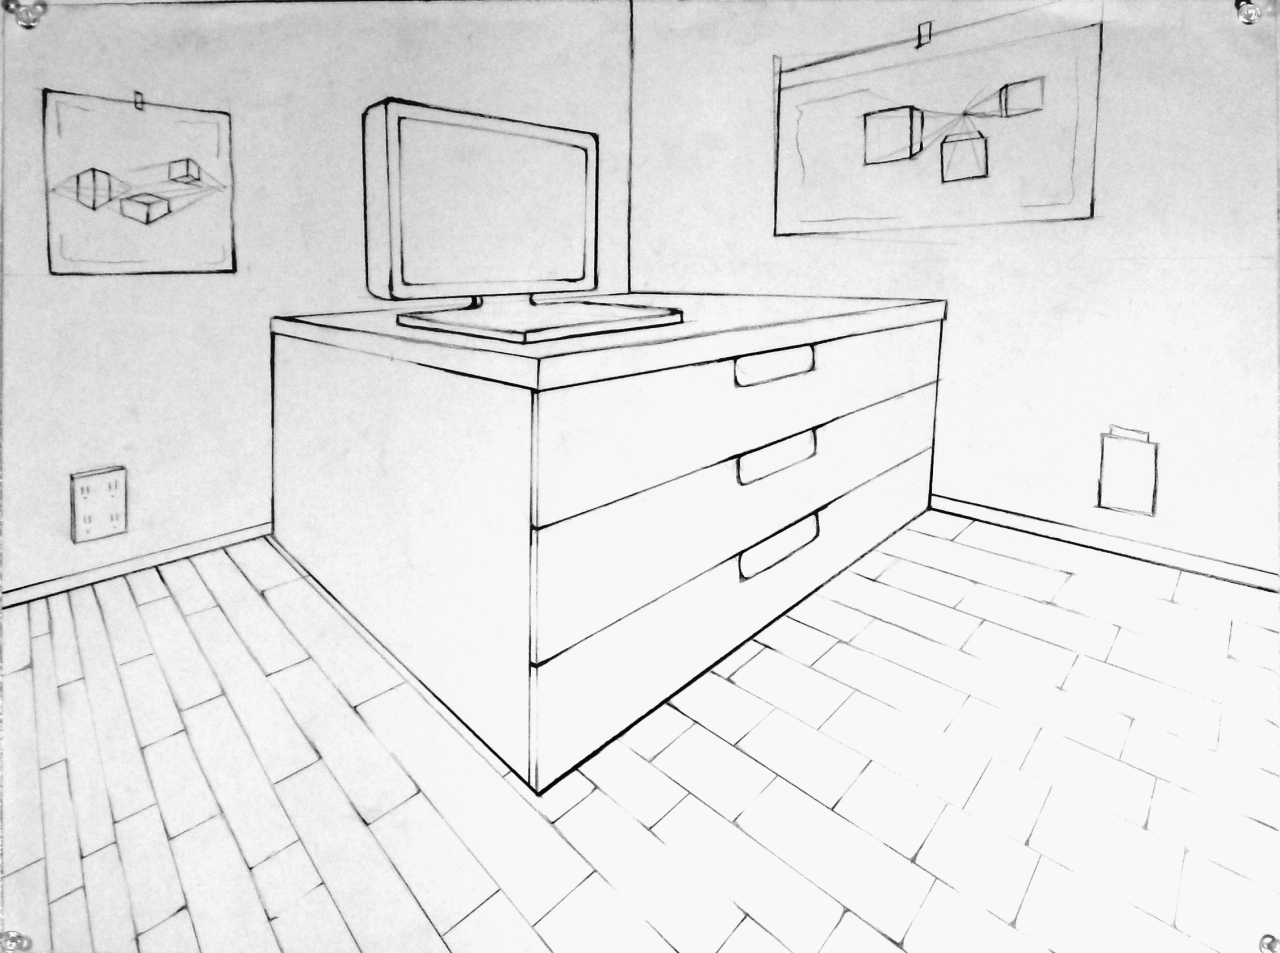 How To Draw Furniture Interior Design ~ Basic drawing examples of point interiors